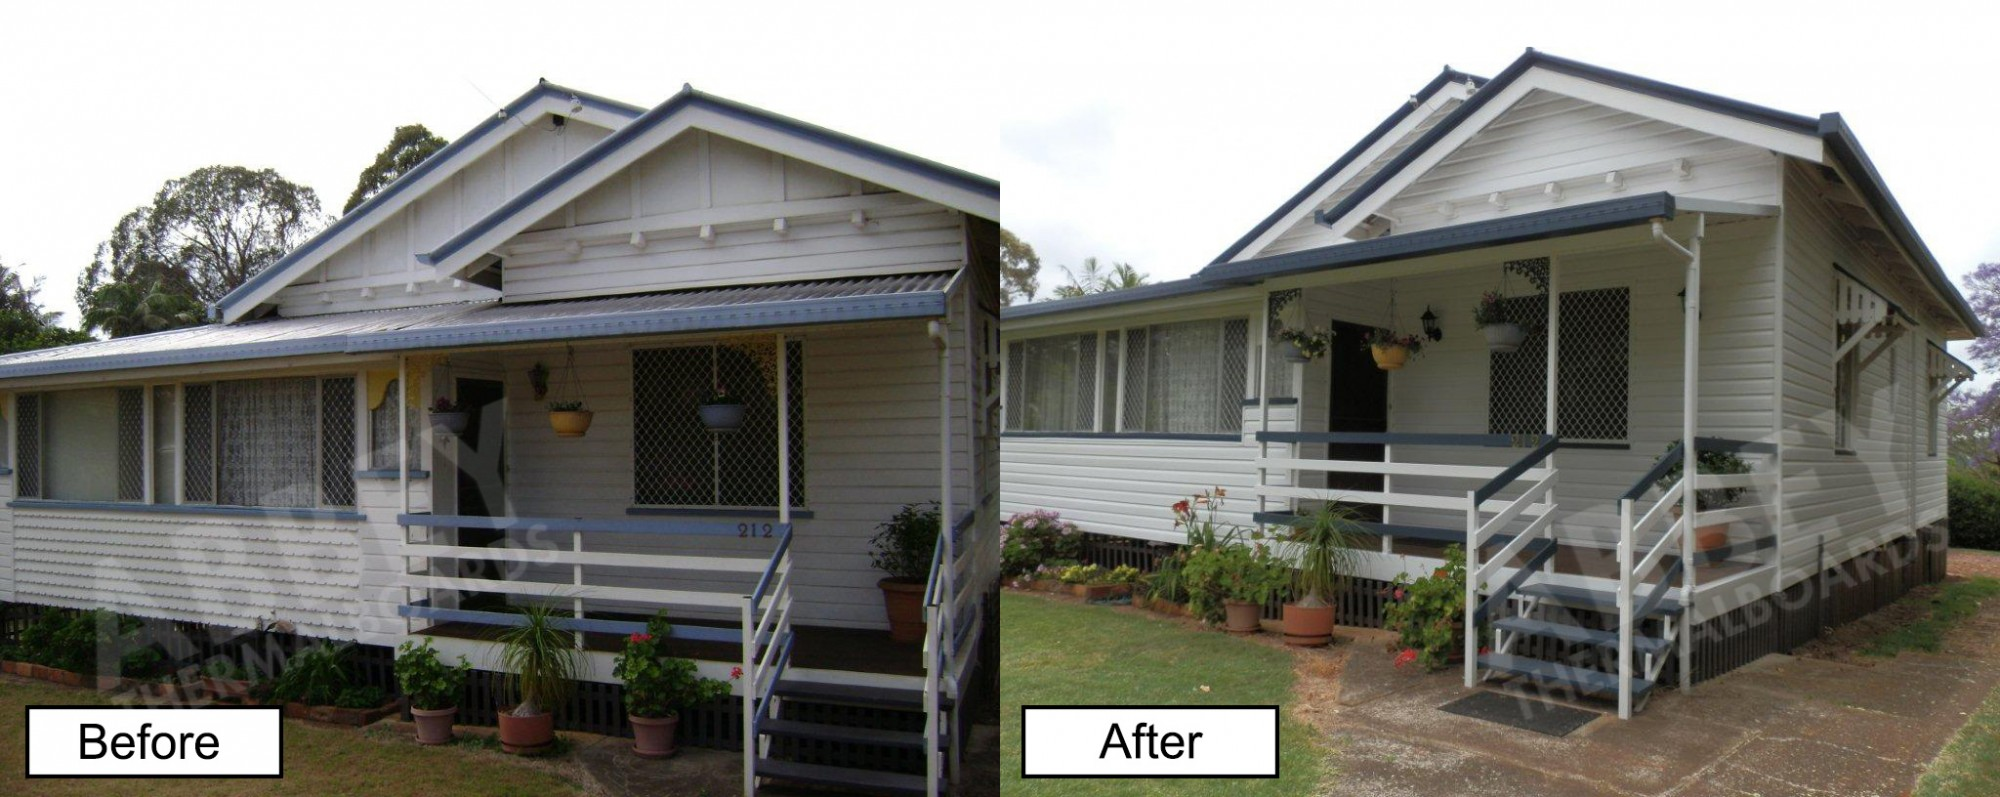 Before and After pictures of house cladding completed for a home.